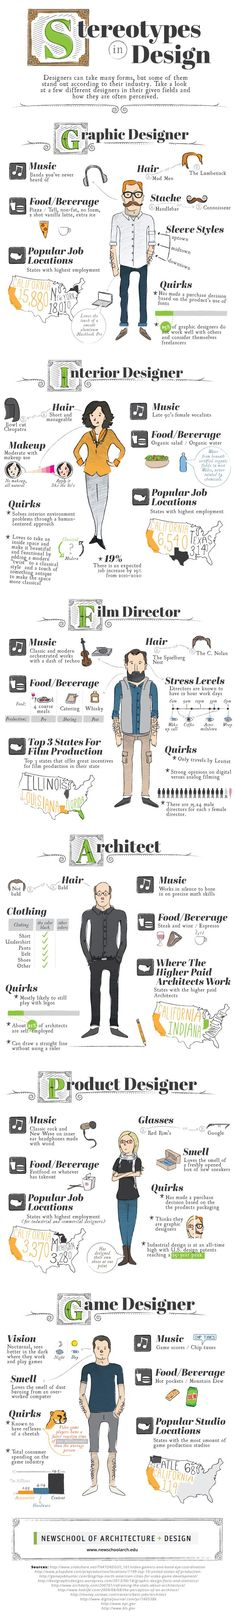 Popular designer stereotypes unveiled in this cheeky graphic | Infographic | Creative Bloq